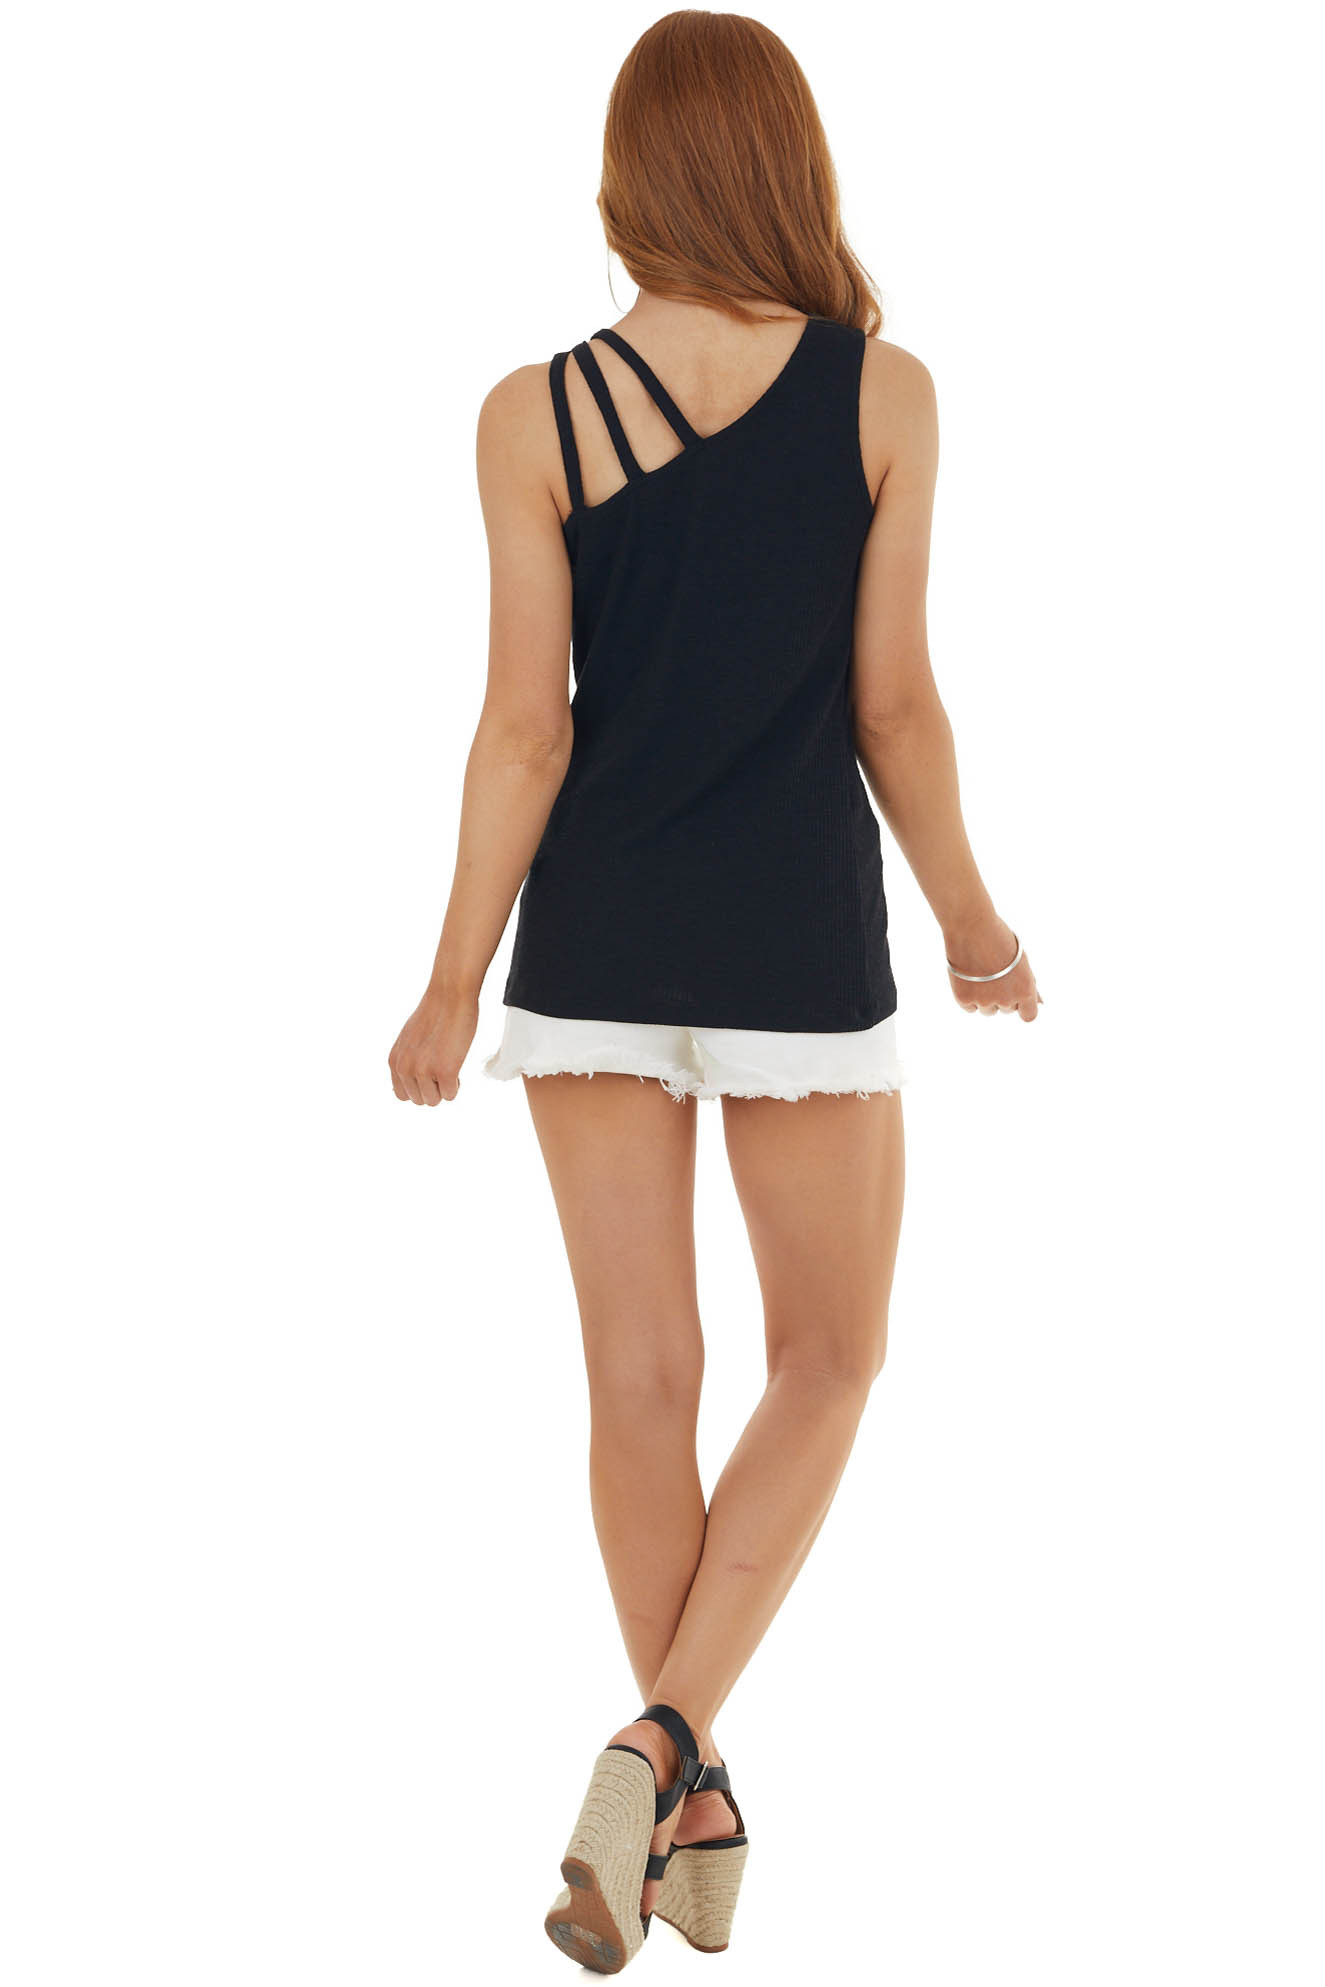 Black Strappy Fitted Sleeveless Ribbed Knit Tank Top